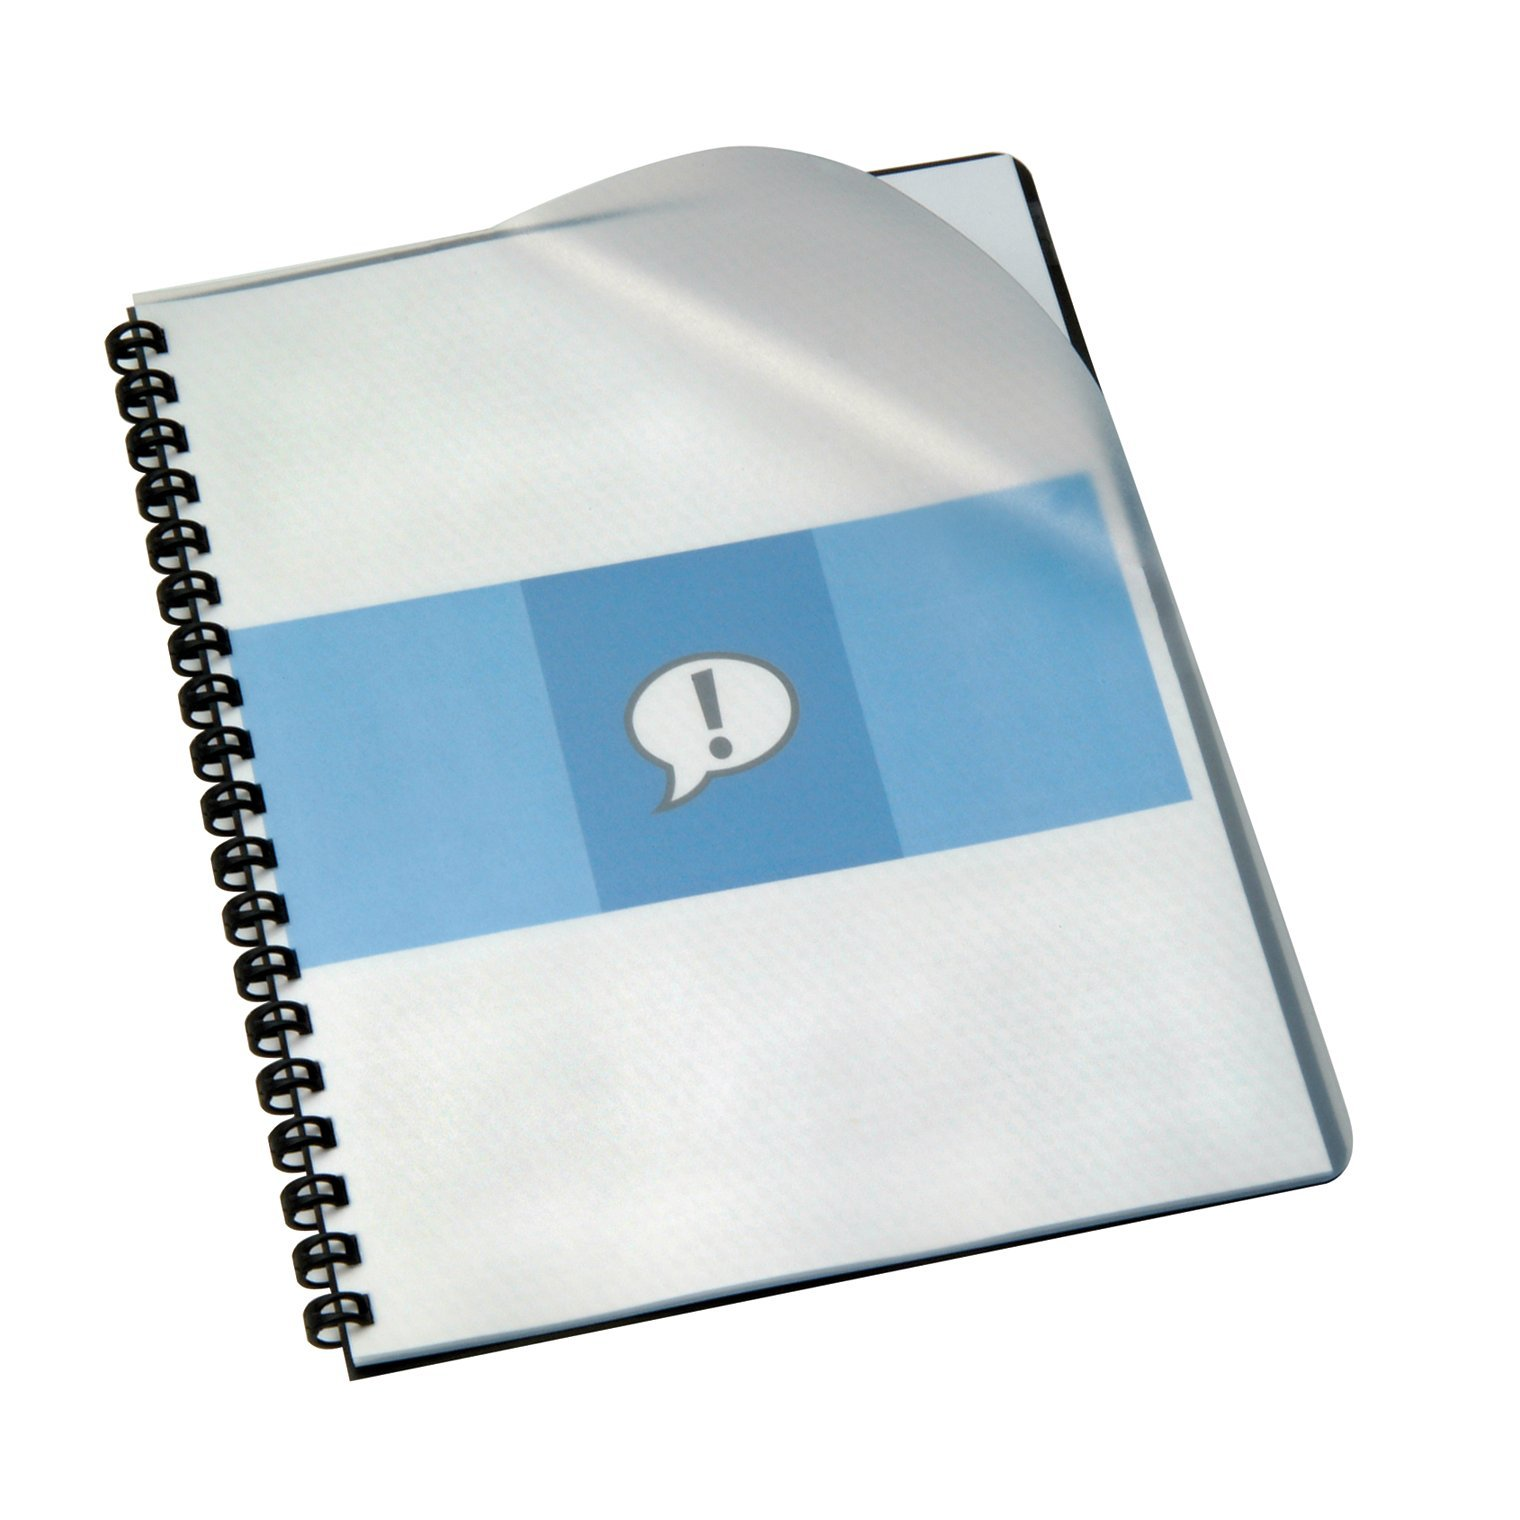 GBC Report / 11 x 8.5'' Presentation Covers, Premium Plus Frost Poly, 14 mil , Clear View, 100/Box (2000919G) by GBC